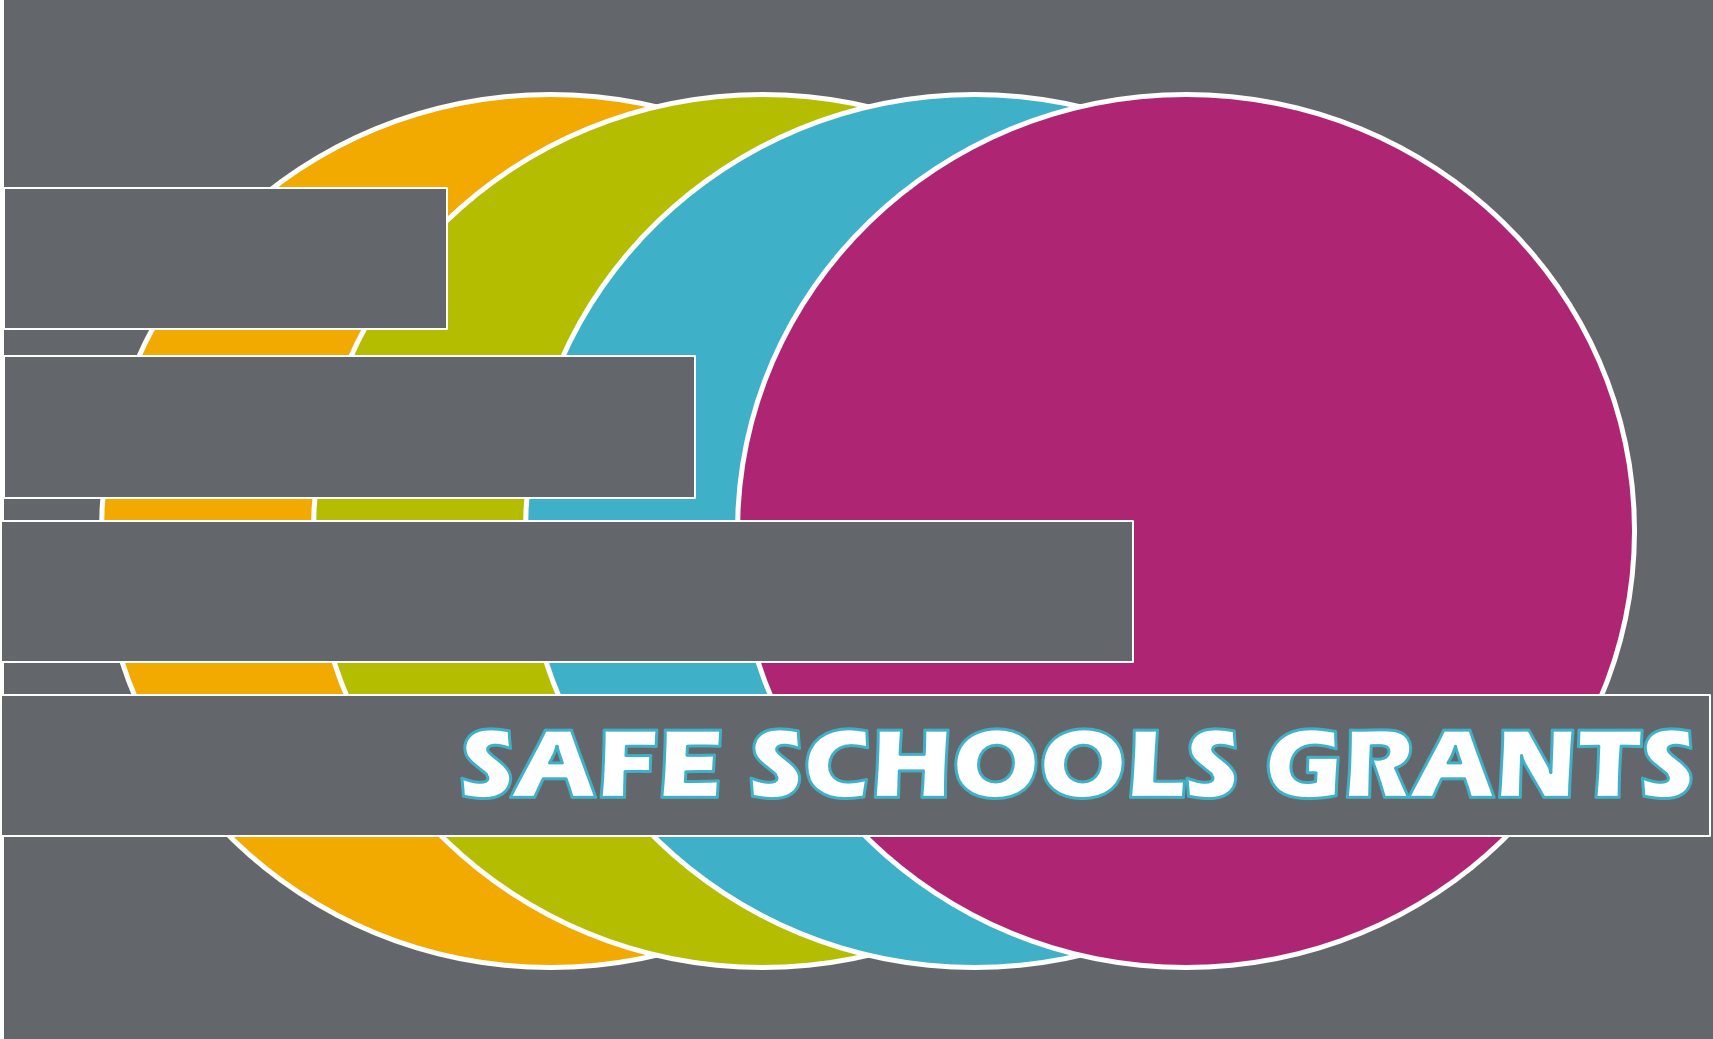 Colored Circles with Safe Schools Grants Text